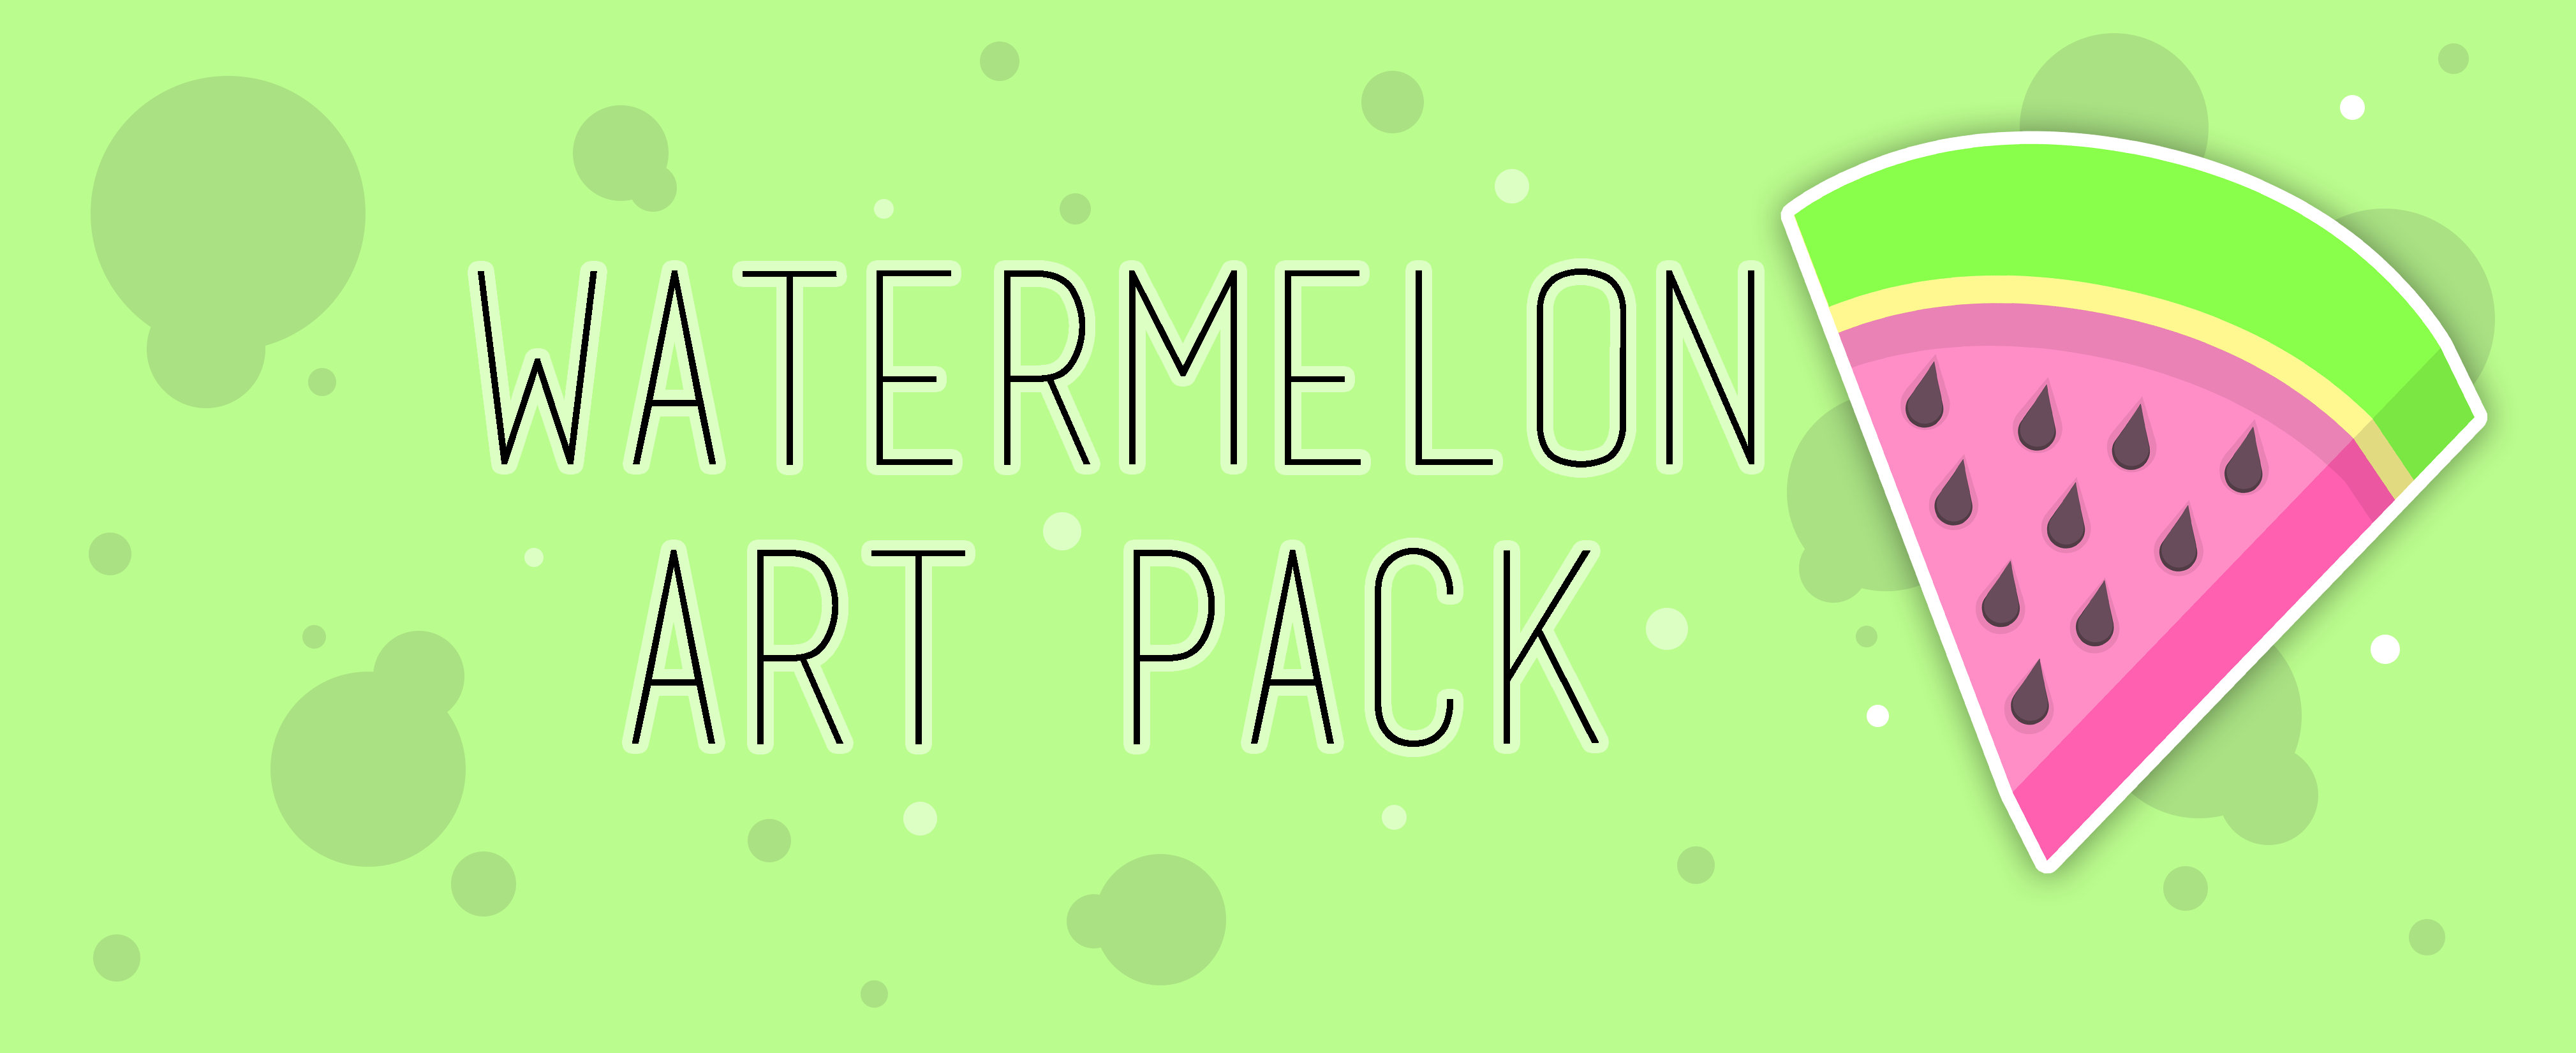 Watermelon Art Pack